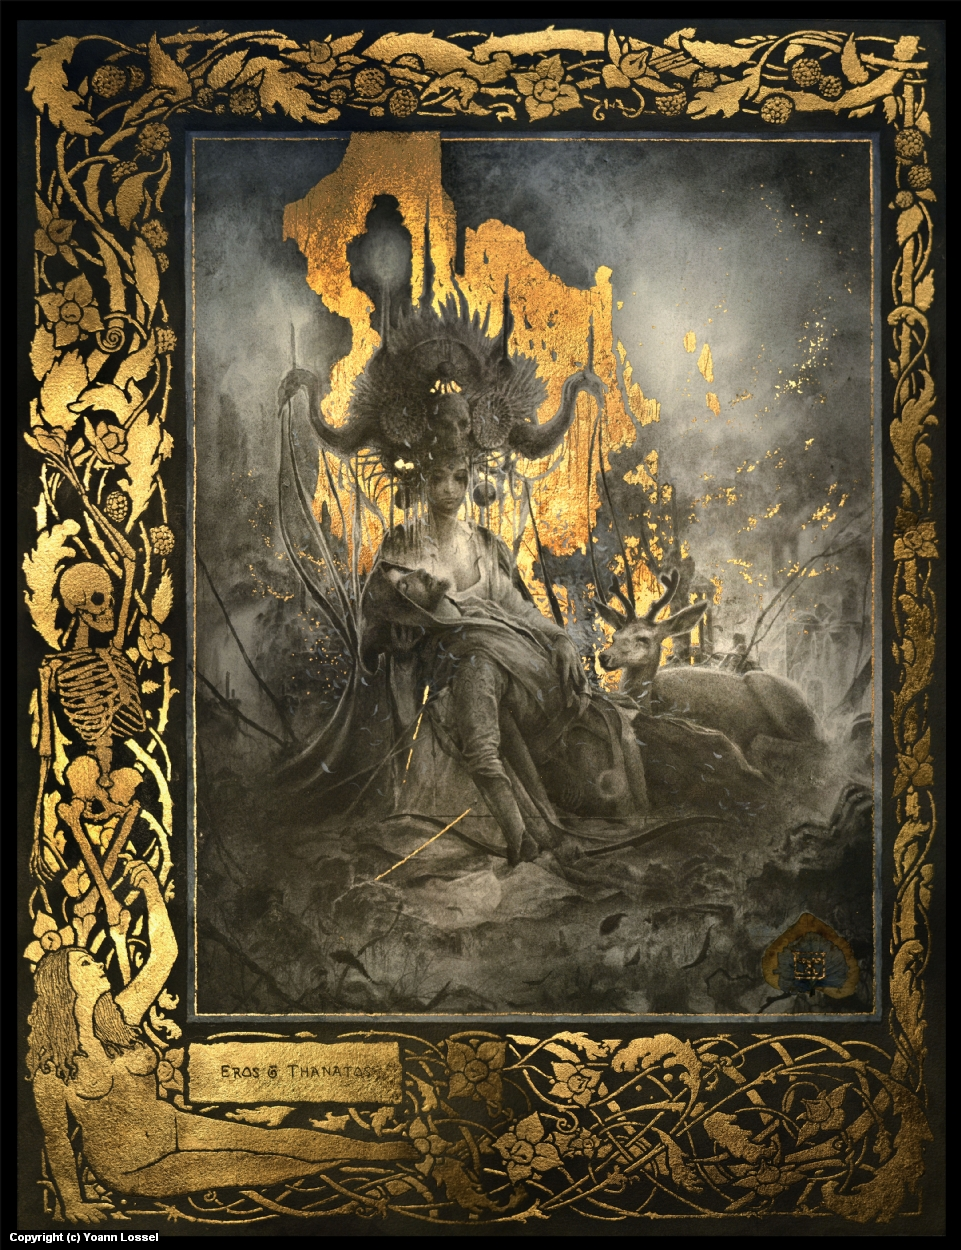 Eros and Thanatos Artwork by Yoann Lossel